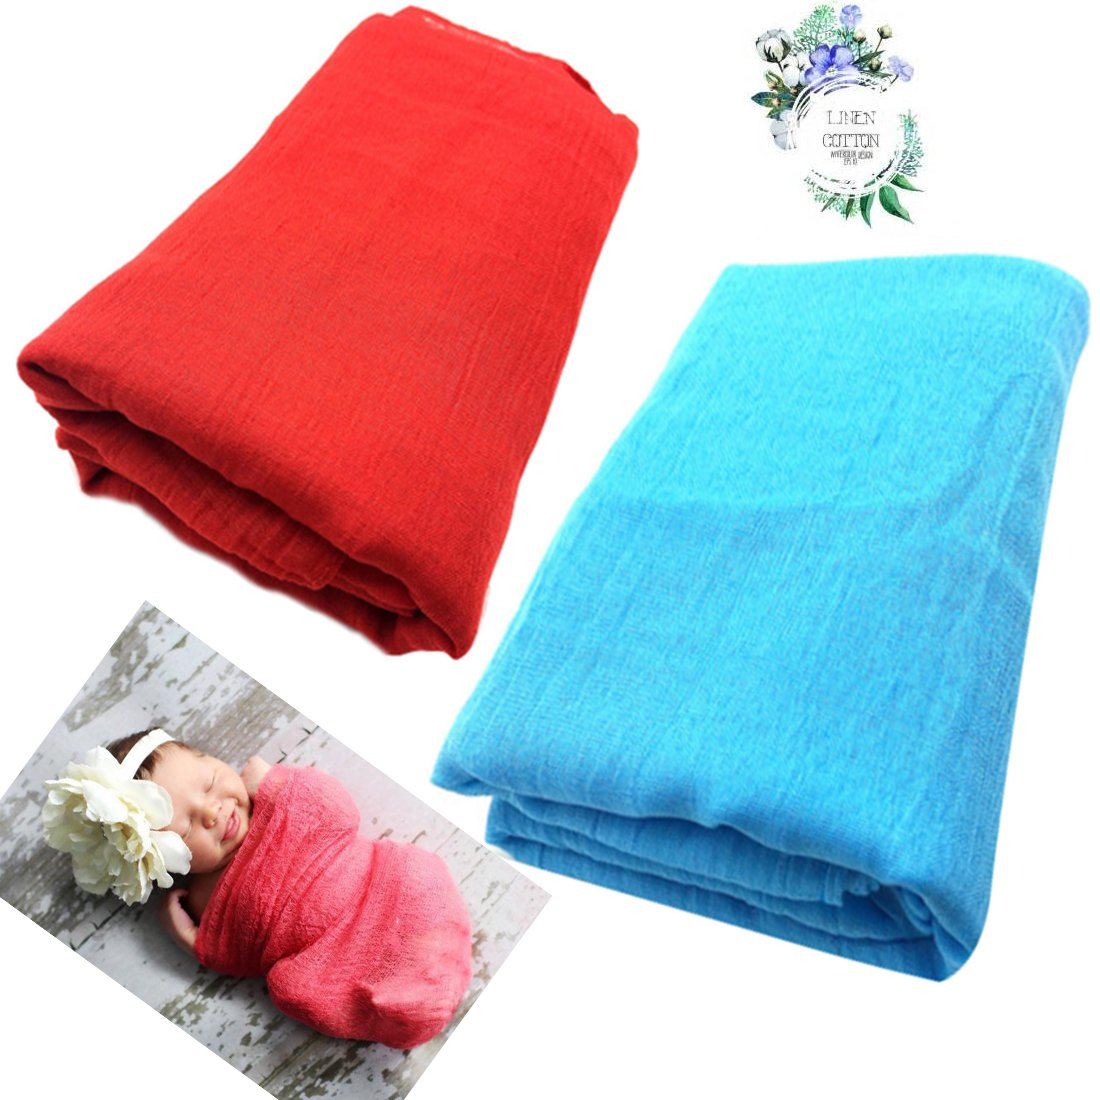 2-Pack Baby Wraps Newborn Photo Props Wraps Cotton & Linen Baby Stretch Wraps October Elf OE433BC